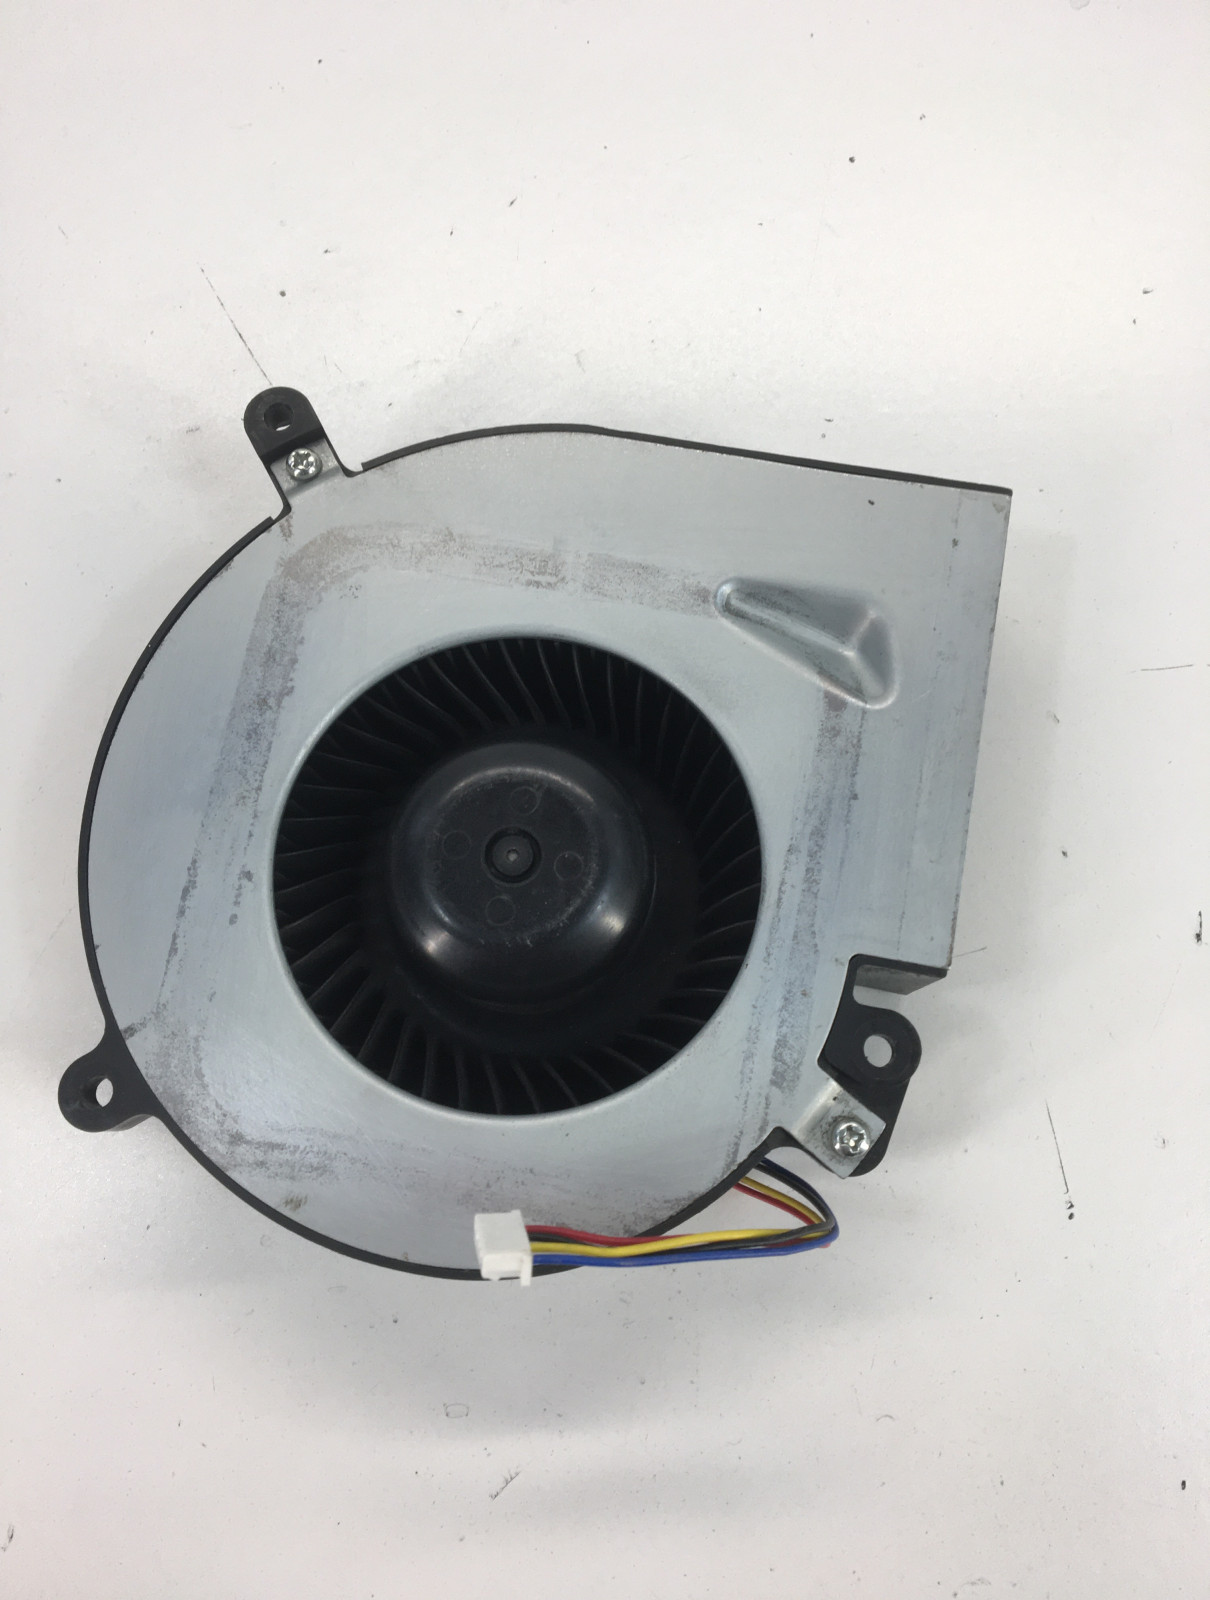 DC Silent Blower Fan SCBD24K4S-506 Brushless